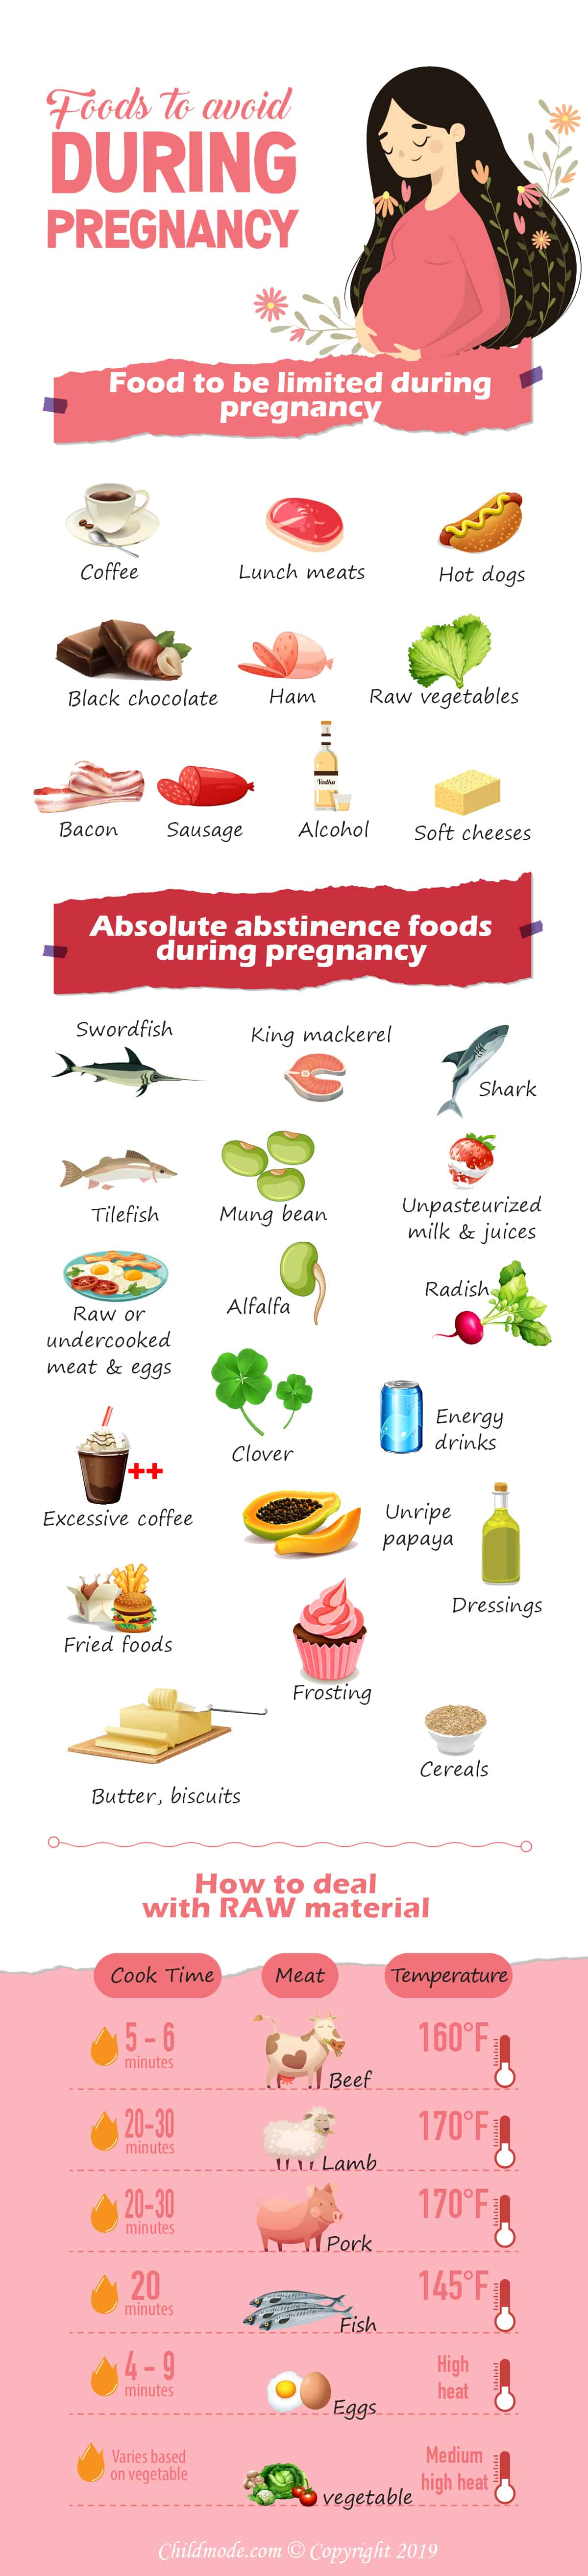 food avoid during pregnancy_final